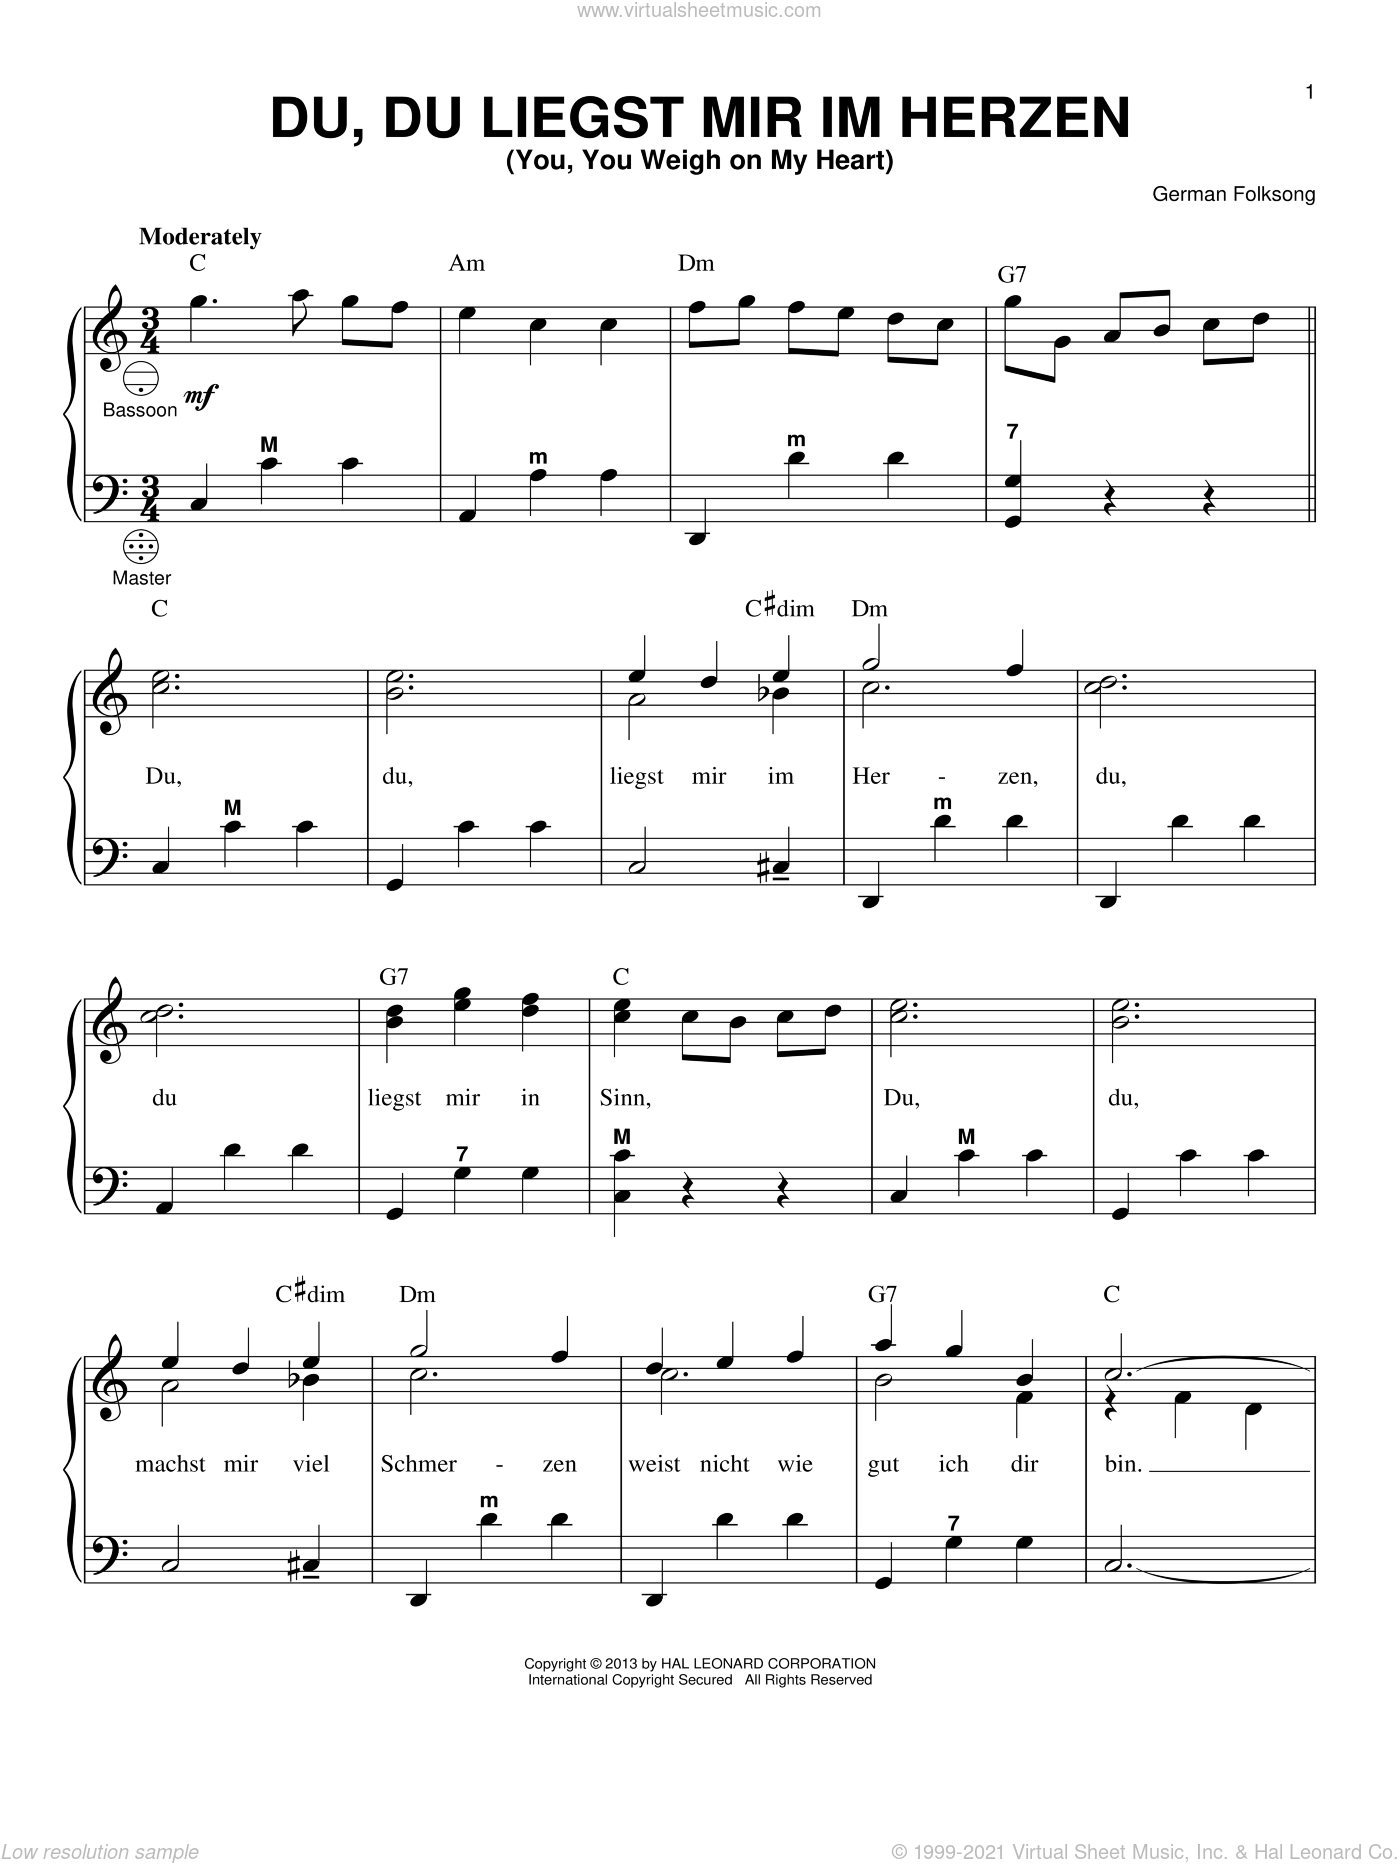 Du, Du Liegst Mir Im Herzen (You, You Weigh On My Heart) sheet music for accordion by Gary Meisner and Miscellaneous. Score Image Preview.